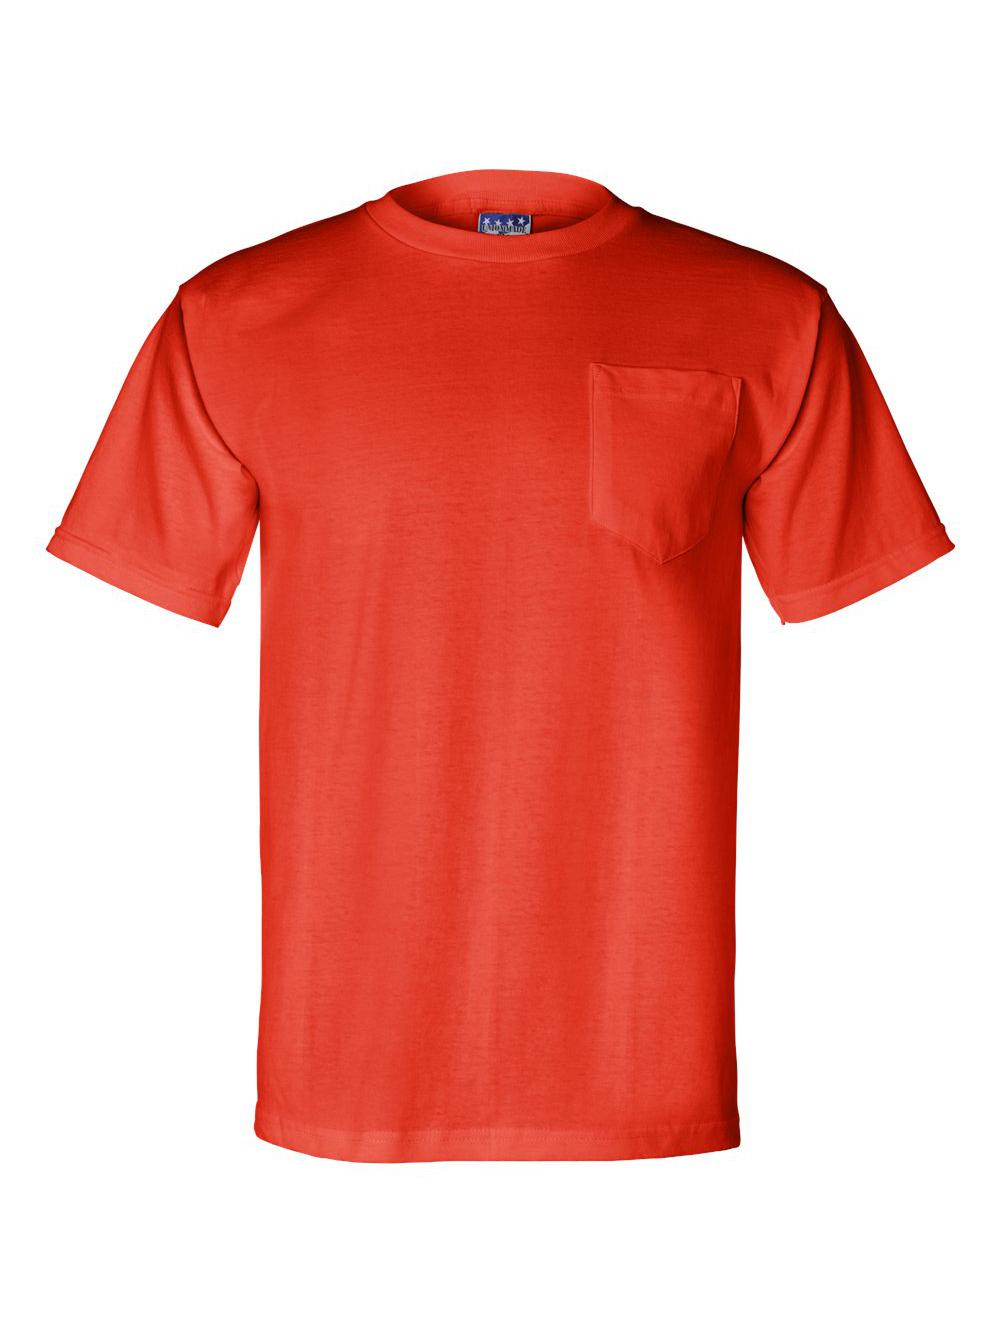 Bayside-Union-Made-Short-Sleeve-T-Shirt-with-a-Pocket-3015 thumbnail 21